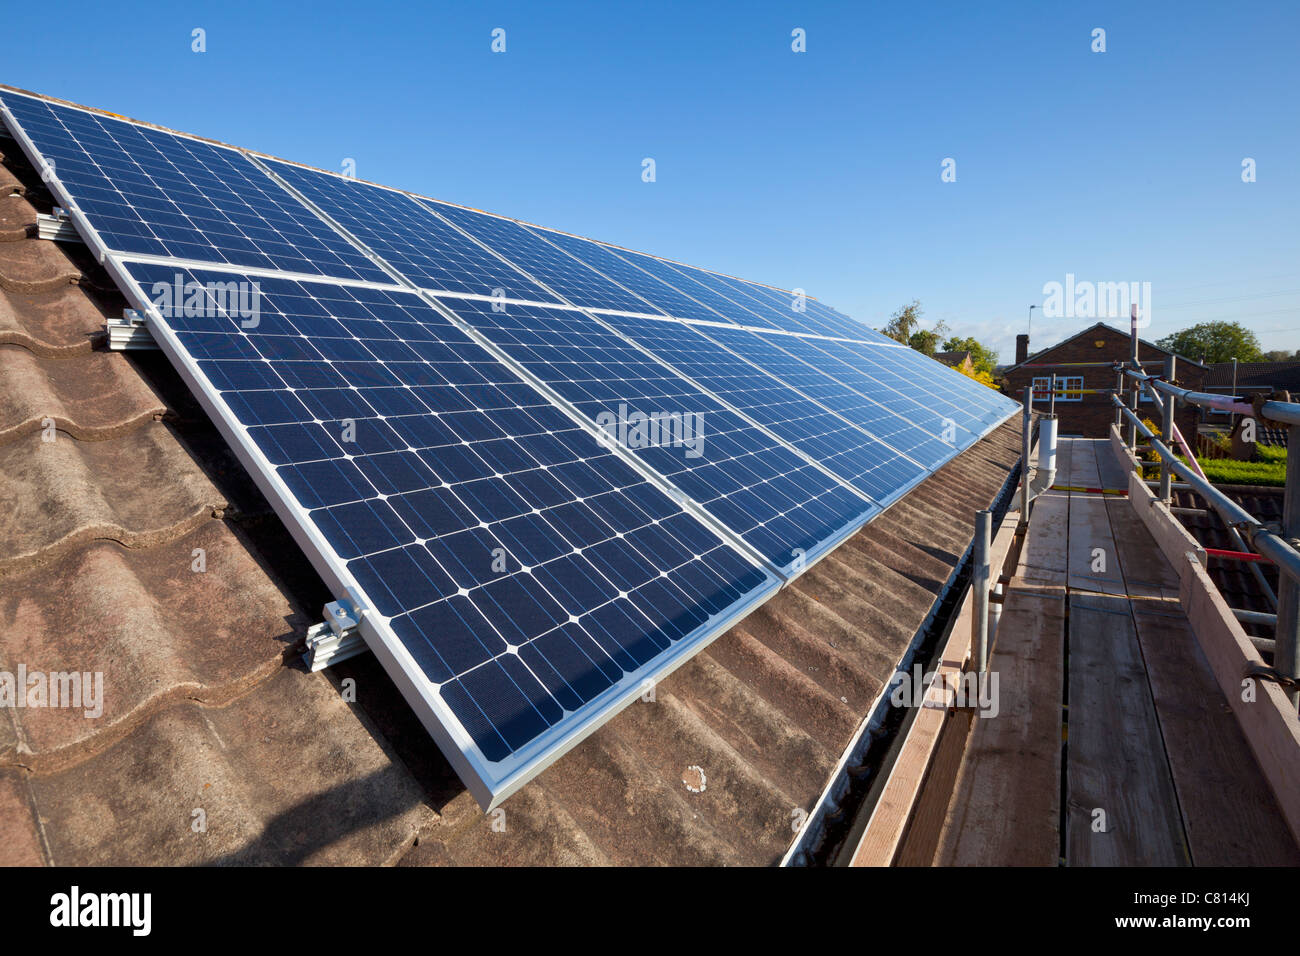 solar panels on house roof england uk gb eu europe - Stock Image